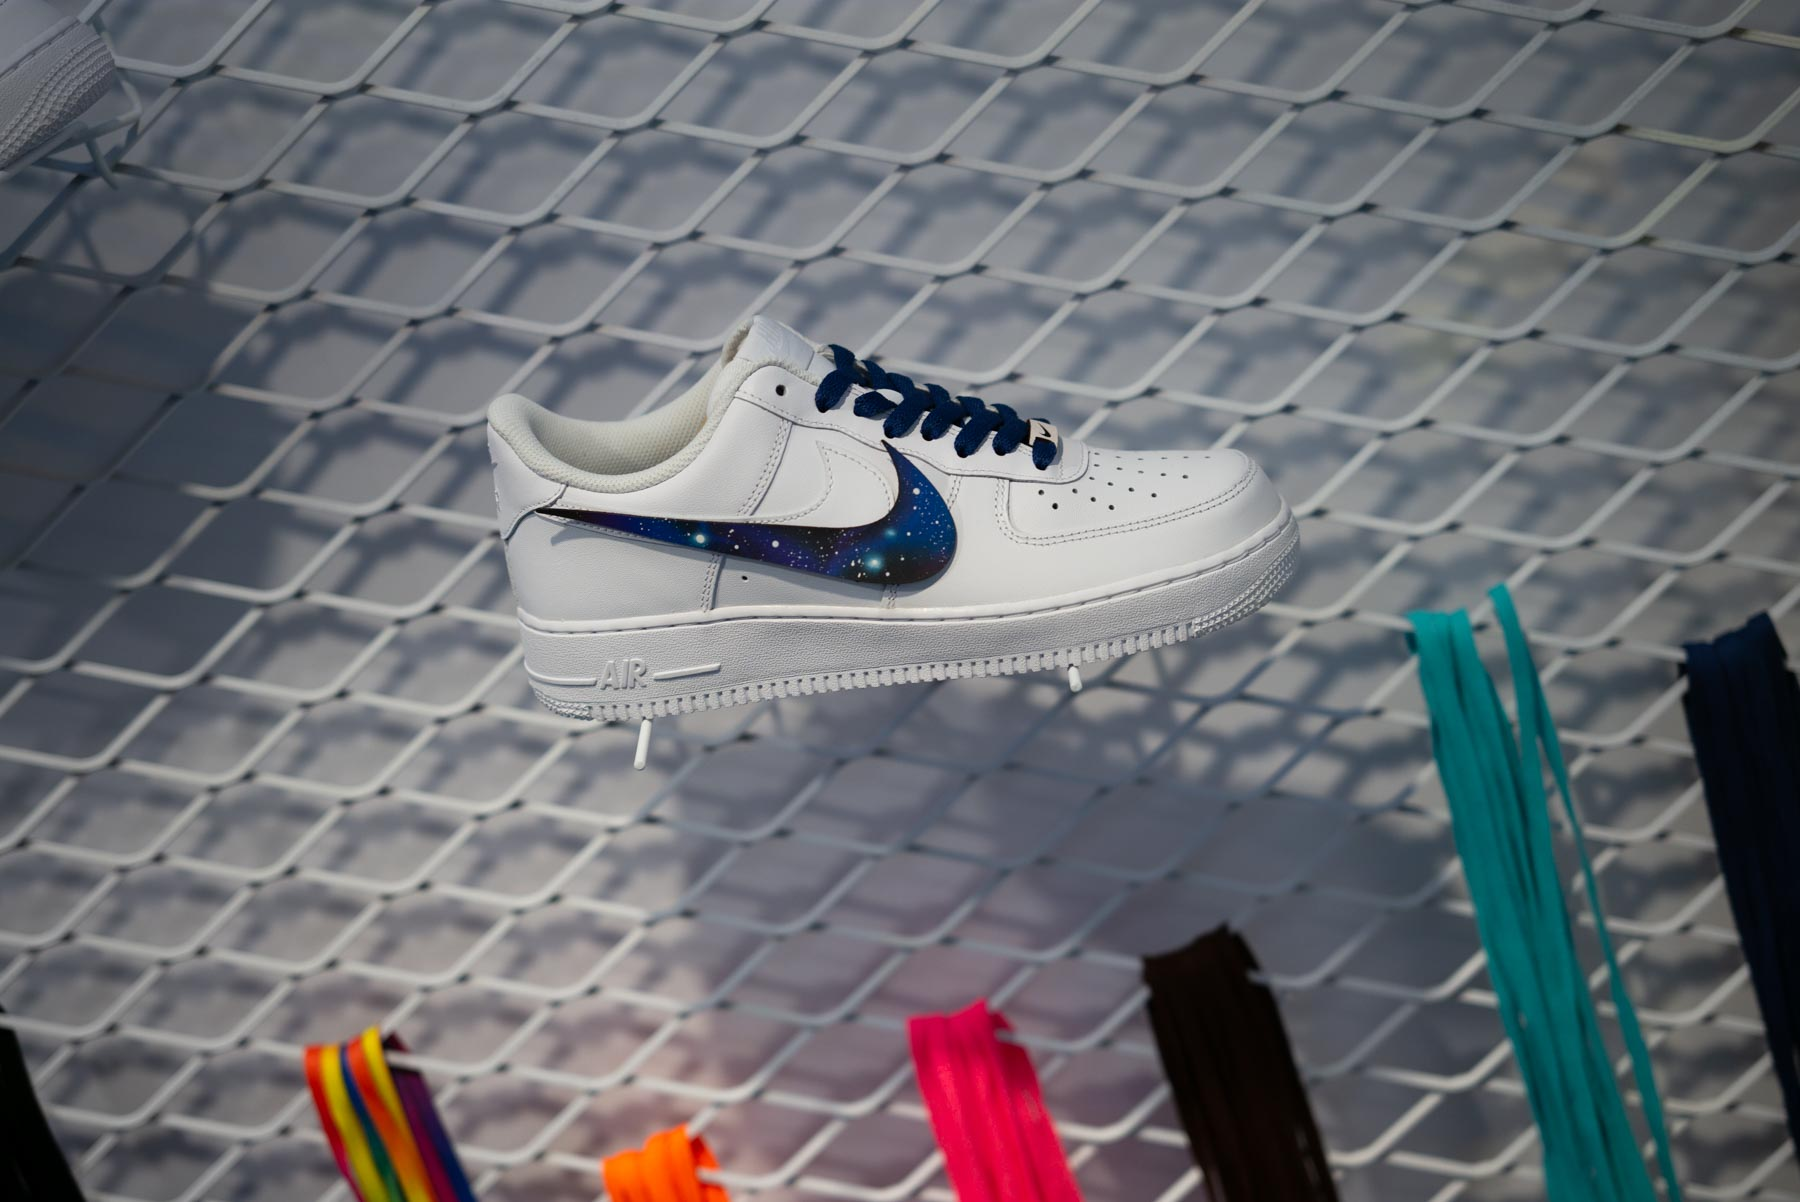 20180928-nike-airforce1-vogue-fashion-night-out-1009400